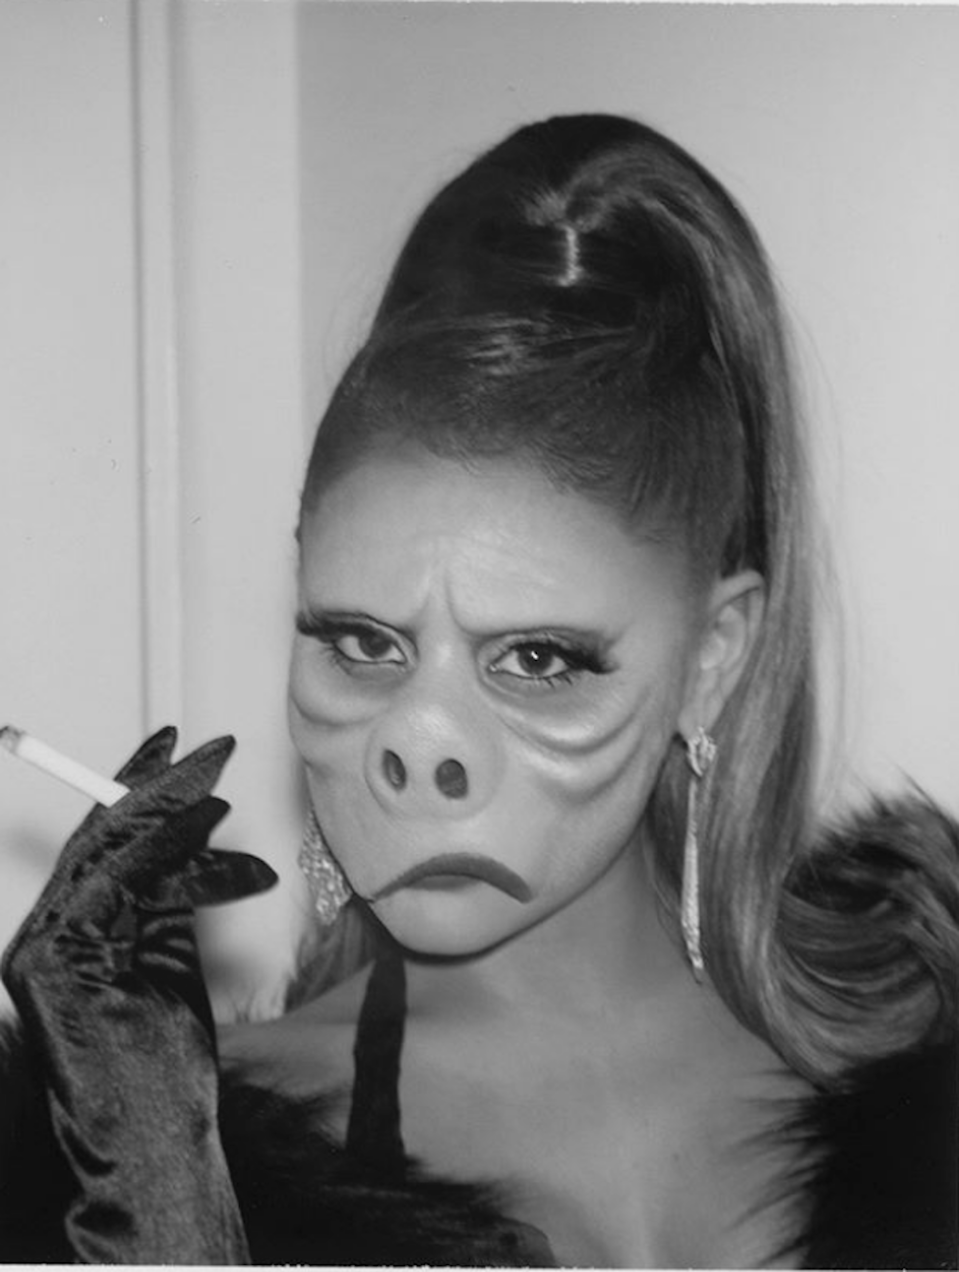 """Grande paid homage to an iconic <em>Twilight Zone</em> episode for her costume. Titled """"Eye of the Beholder,"""" it centers on a world where the standards of conventional beauty are inverted."""